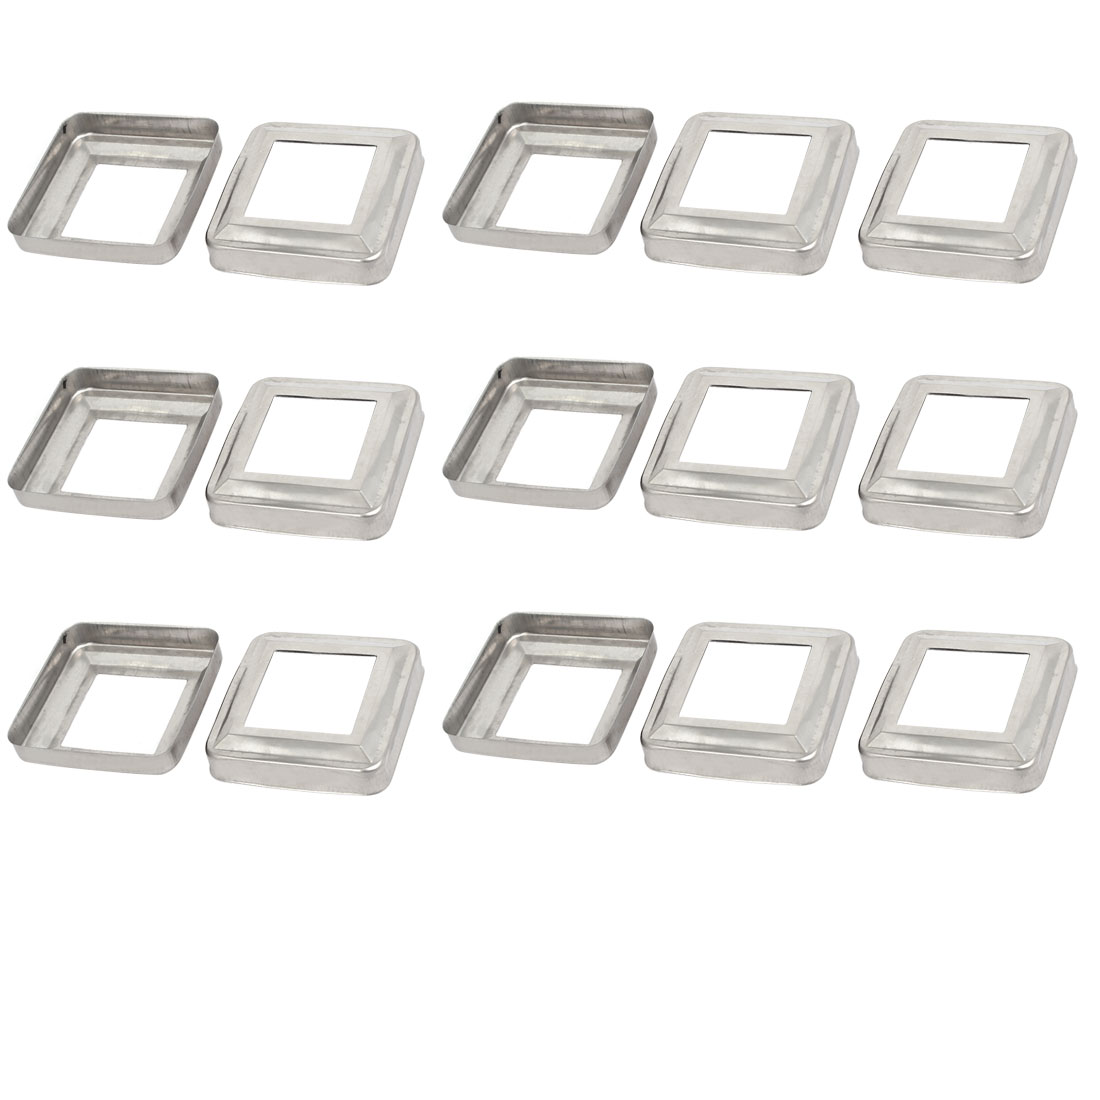 15pcs Ladder Handrail Hand Rail 40mm x 40mm Post Plate Cover 304 Stainless Steel